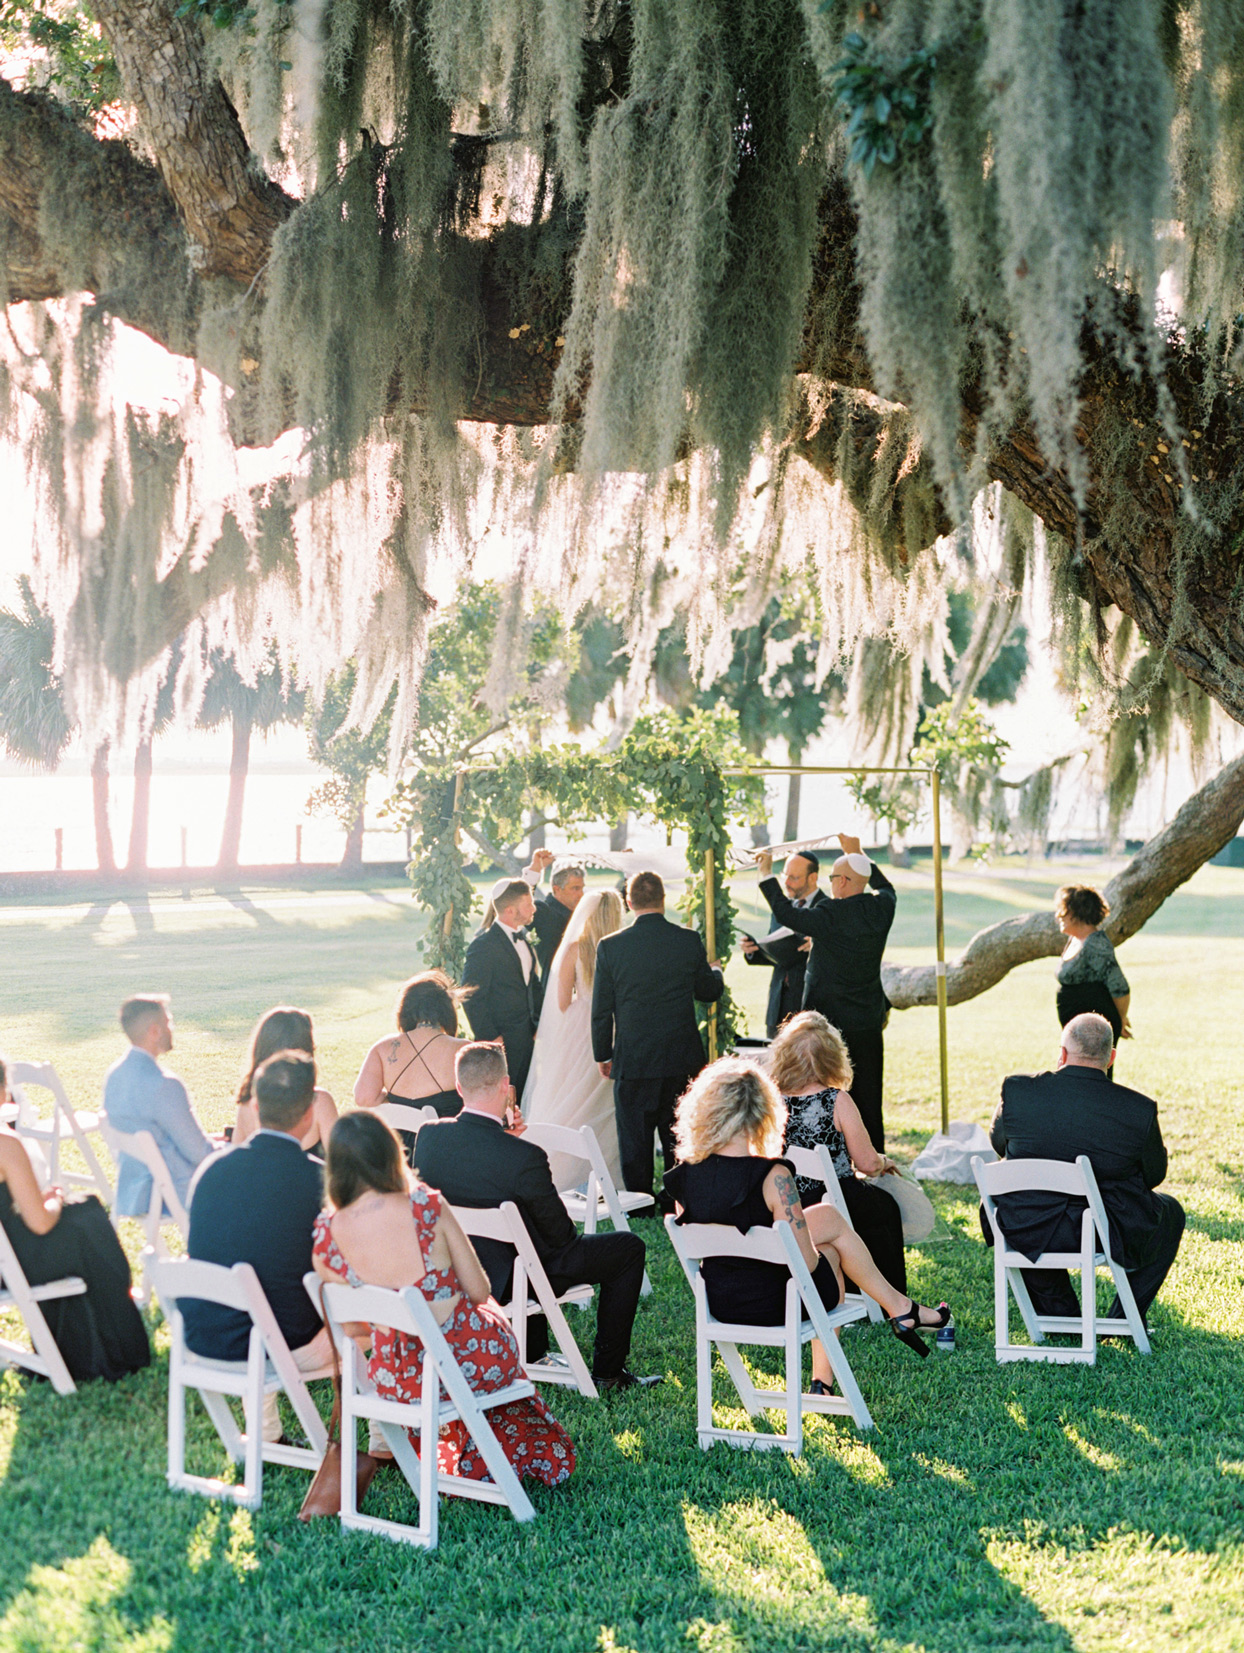 outdoor wedding ceremony with tallit held above couples heads